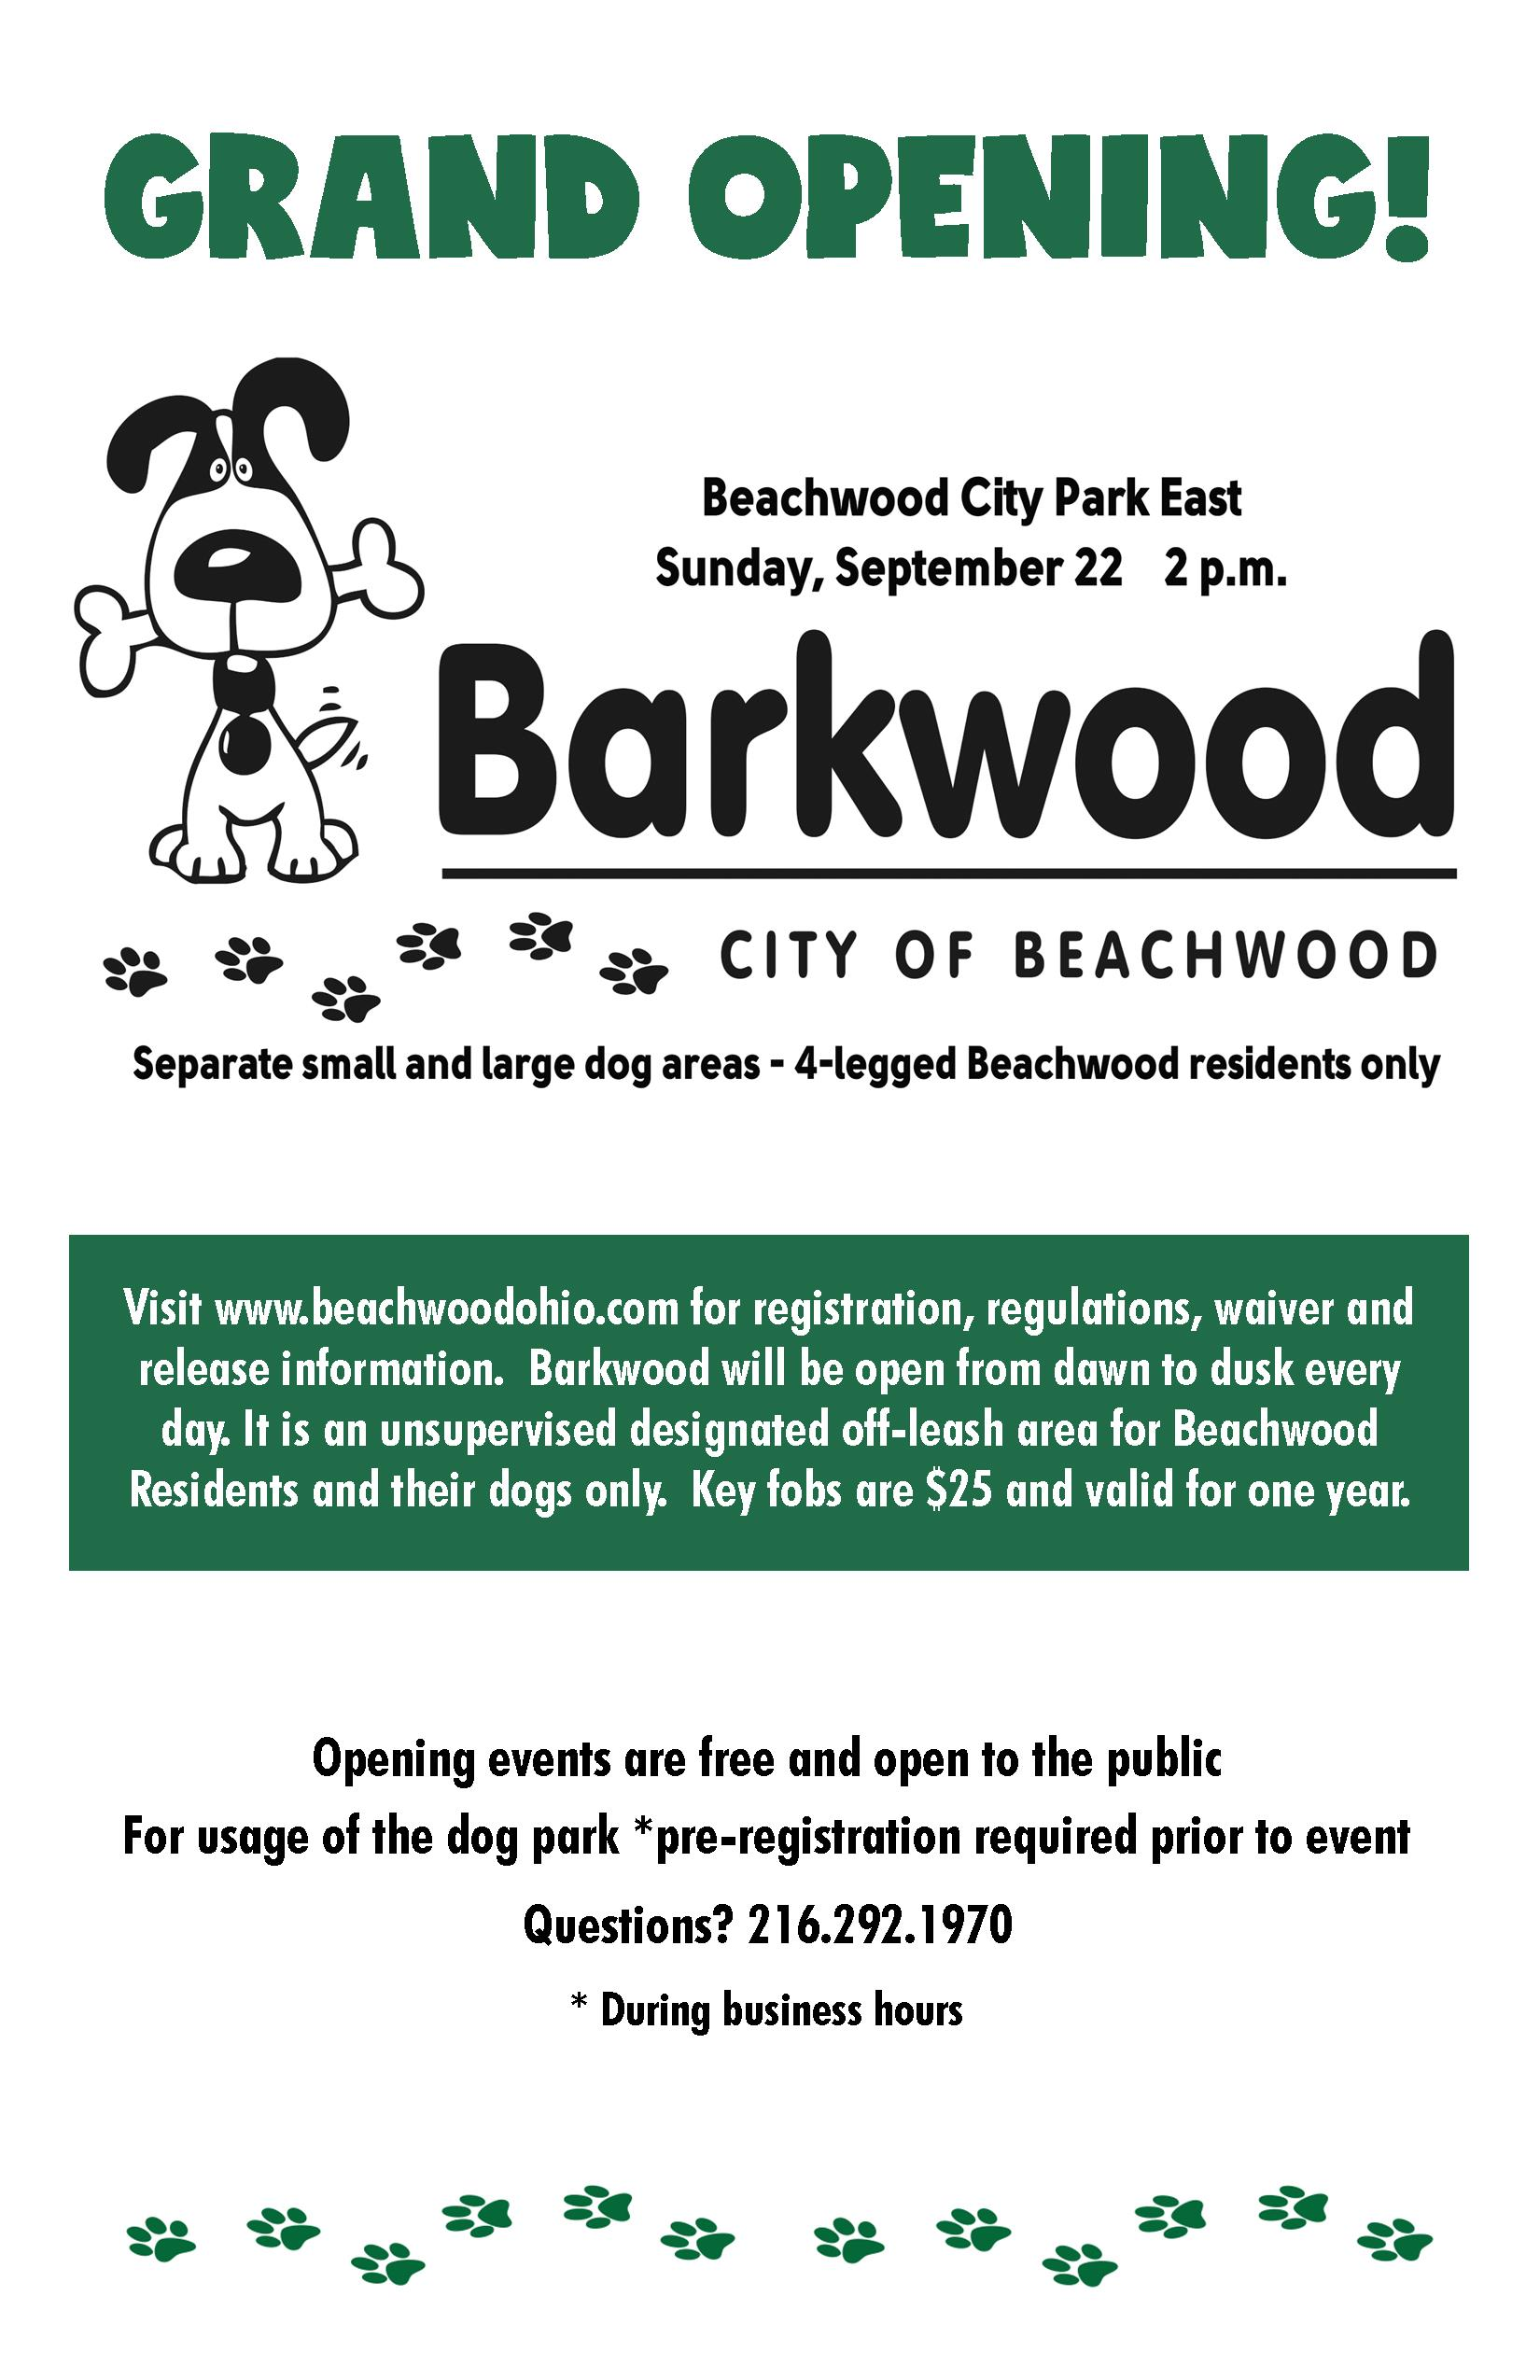 The Barkwood Grand Opening is Sunday, Sept. 22 at 2:00 PM, rain or shine